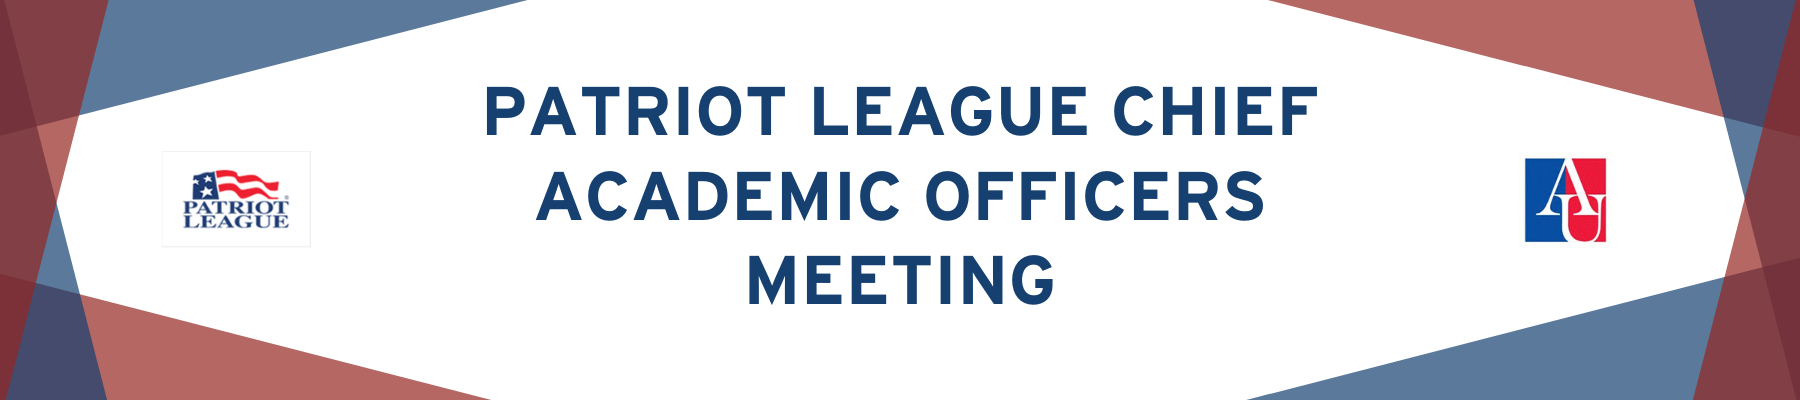 Patriot League Chief Academic Officers Meeting